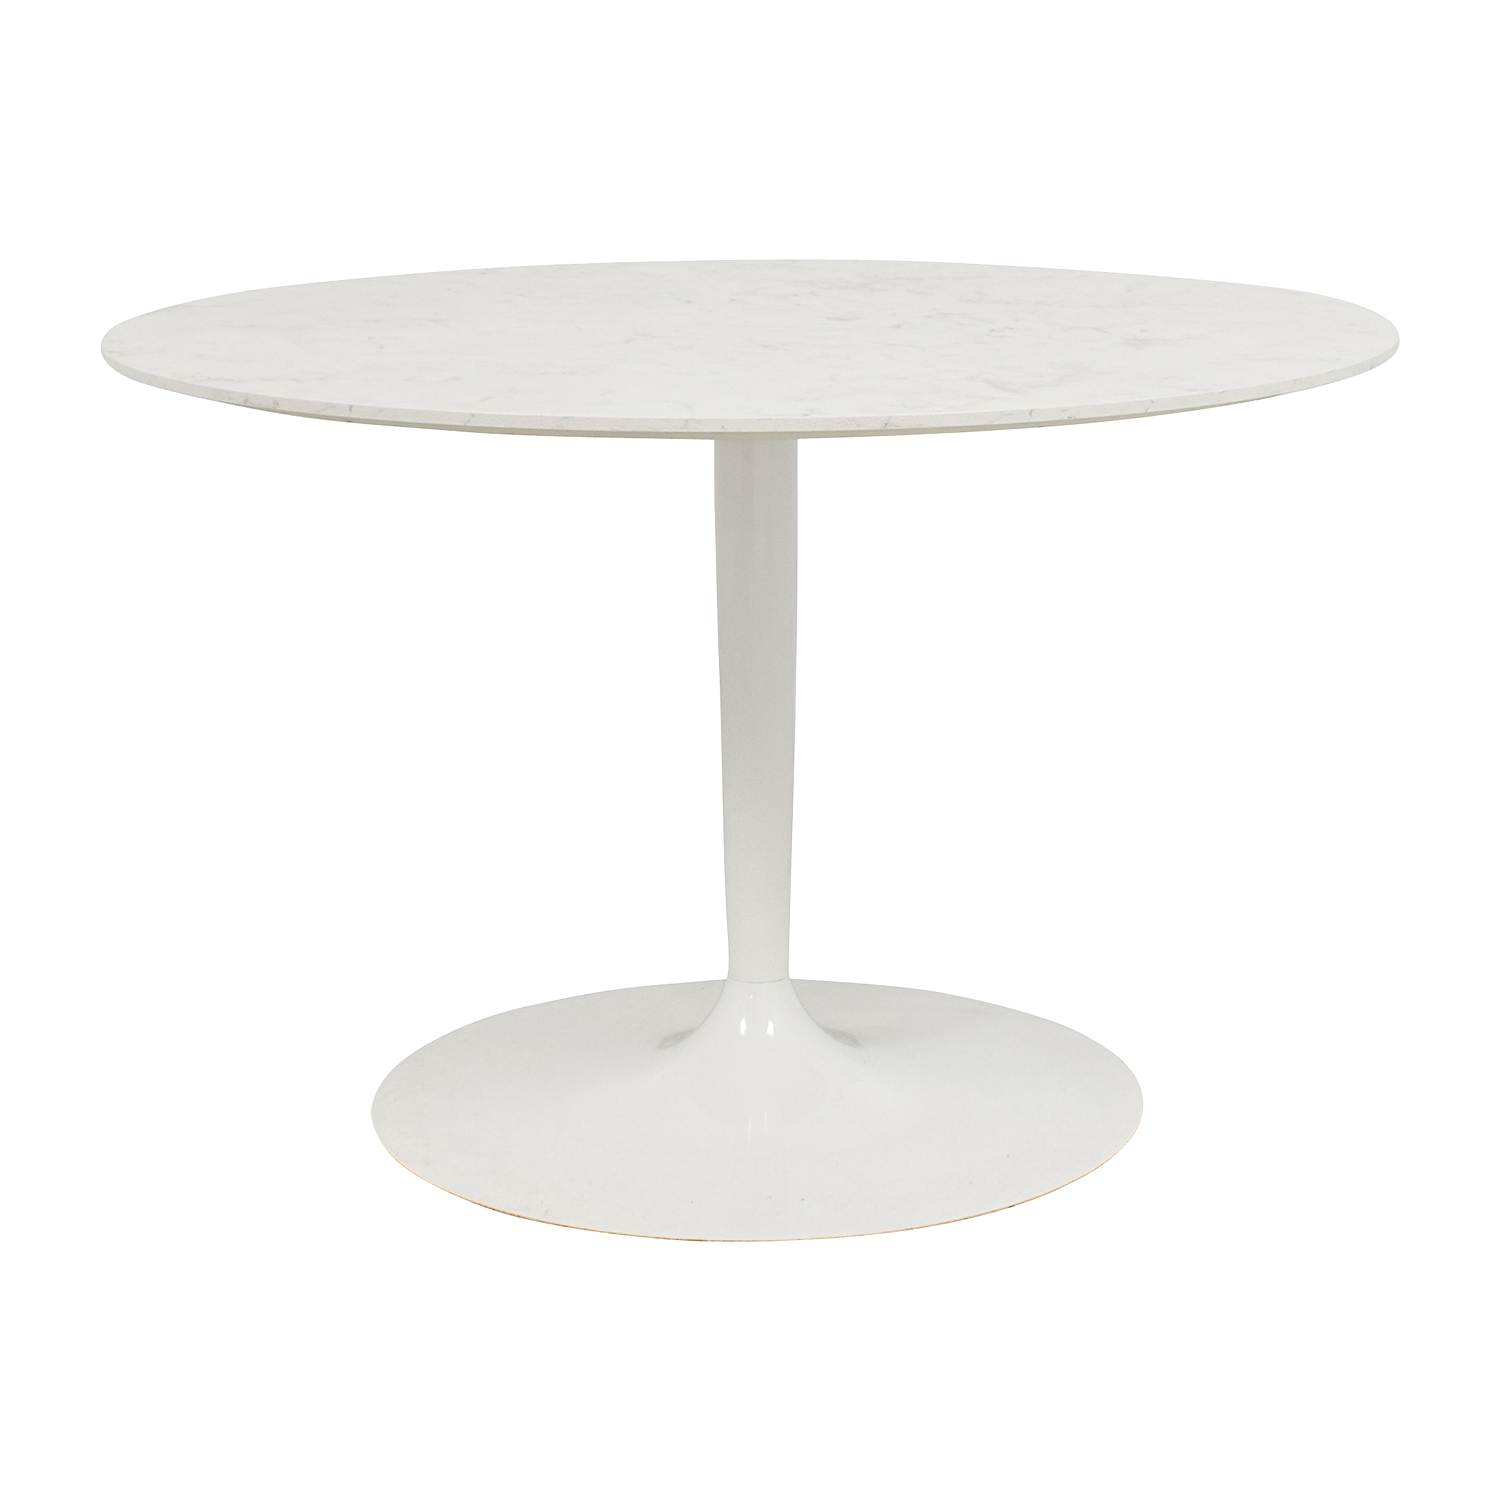 Lippa 48 Inch Artificial Marbel Dining Table sale